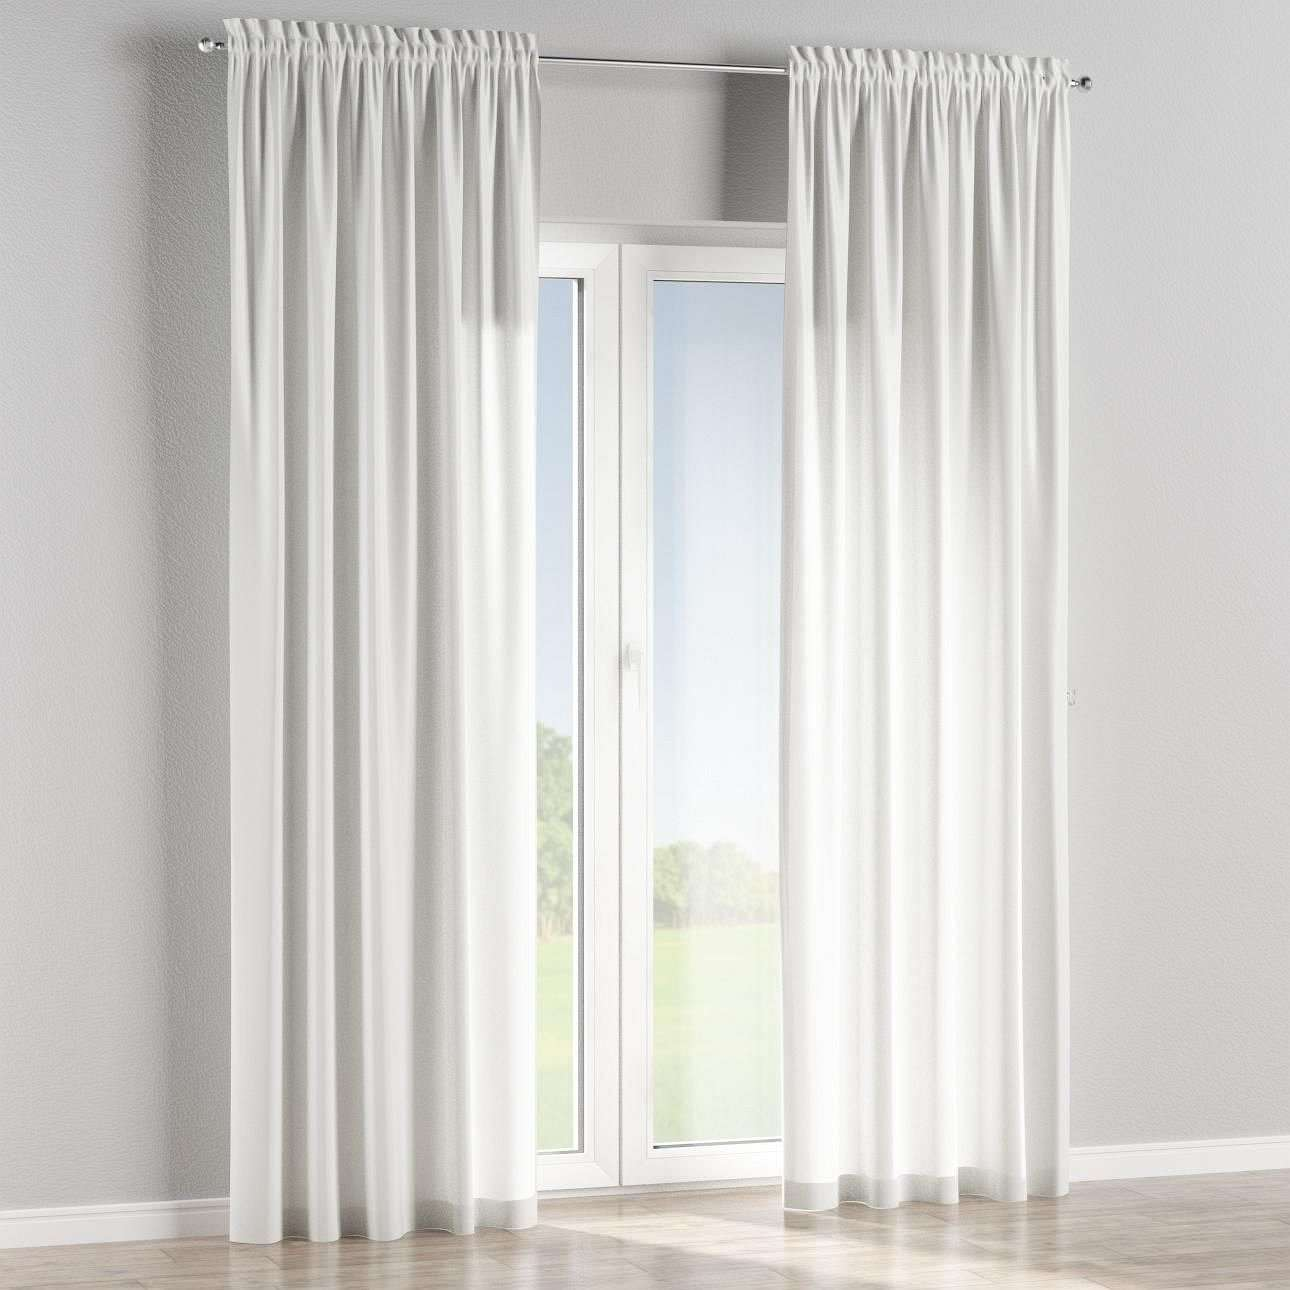 Slot and frill lined curtains in collection Rustica, fabric: 140-32